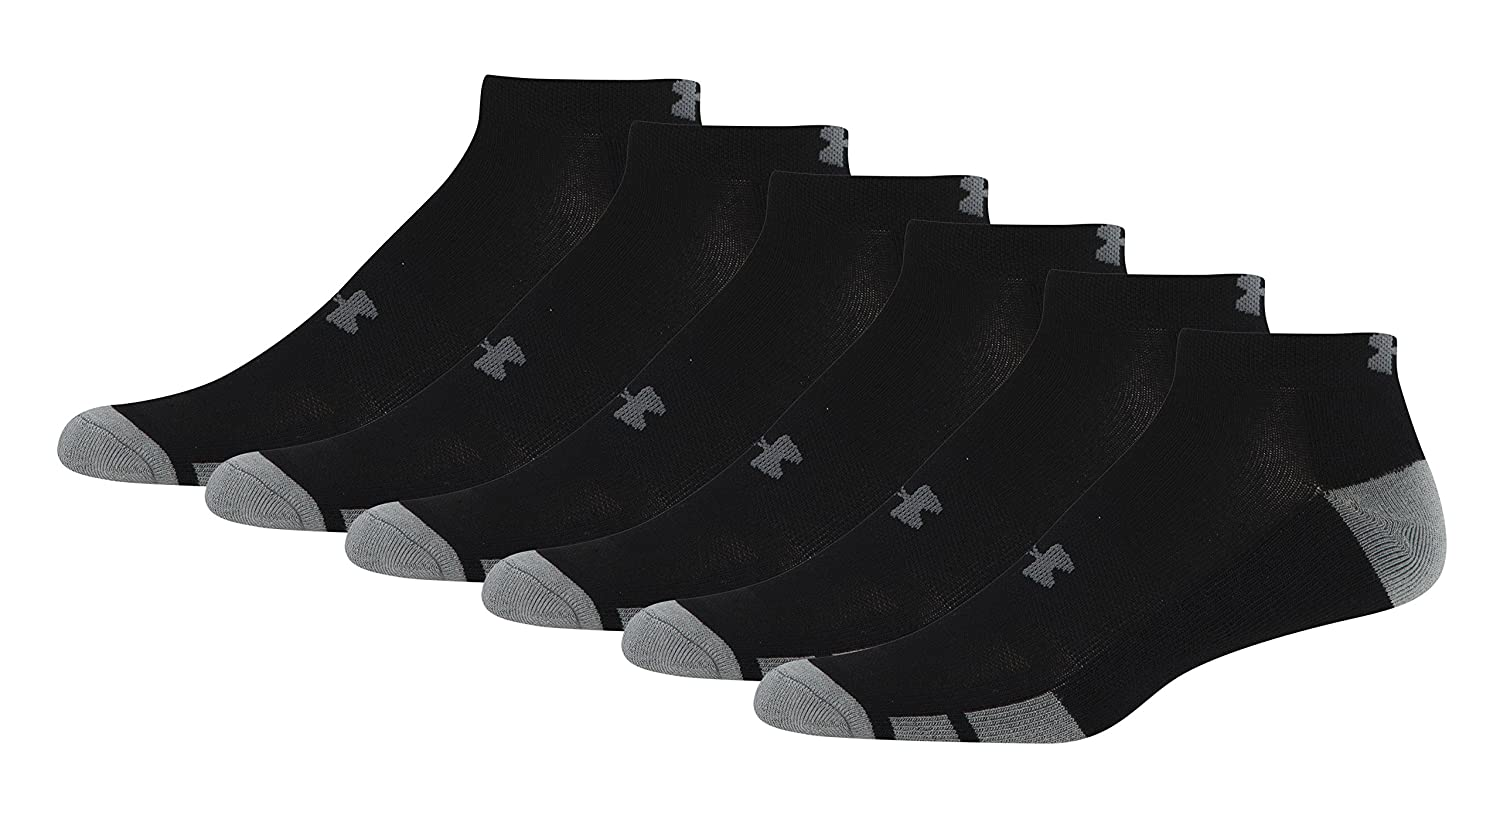 Under Armour Mens Resistor Low-Cut Socks 6 Pack Under Armour Socks